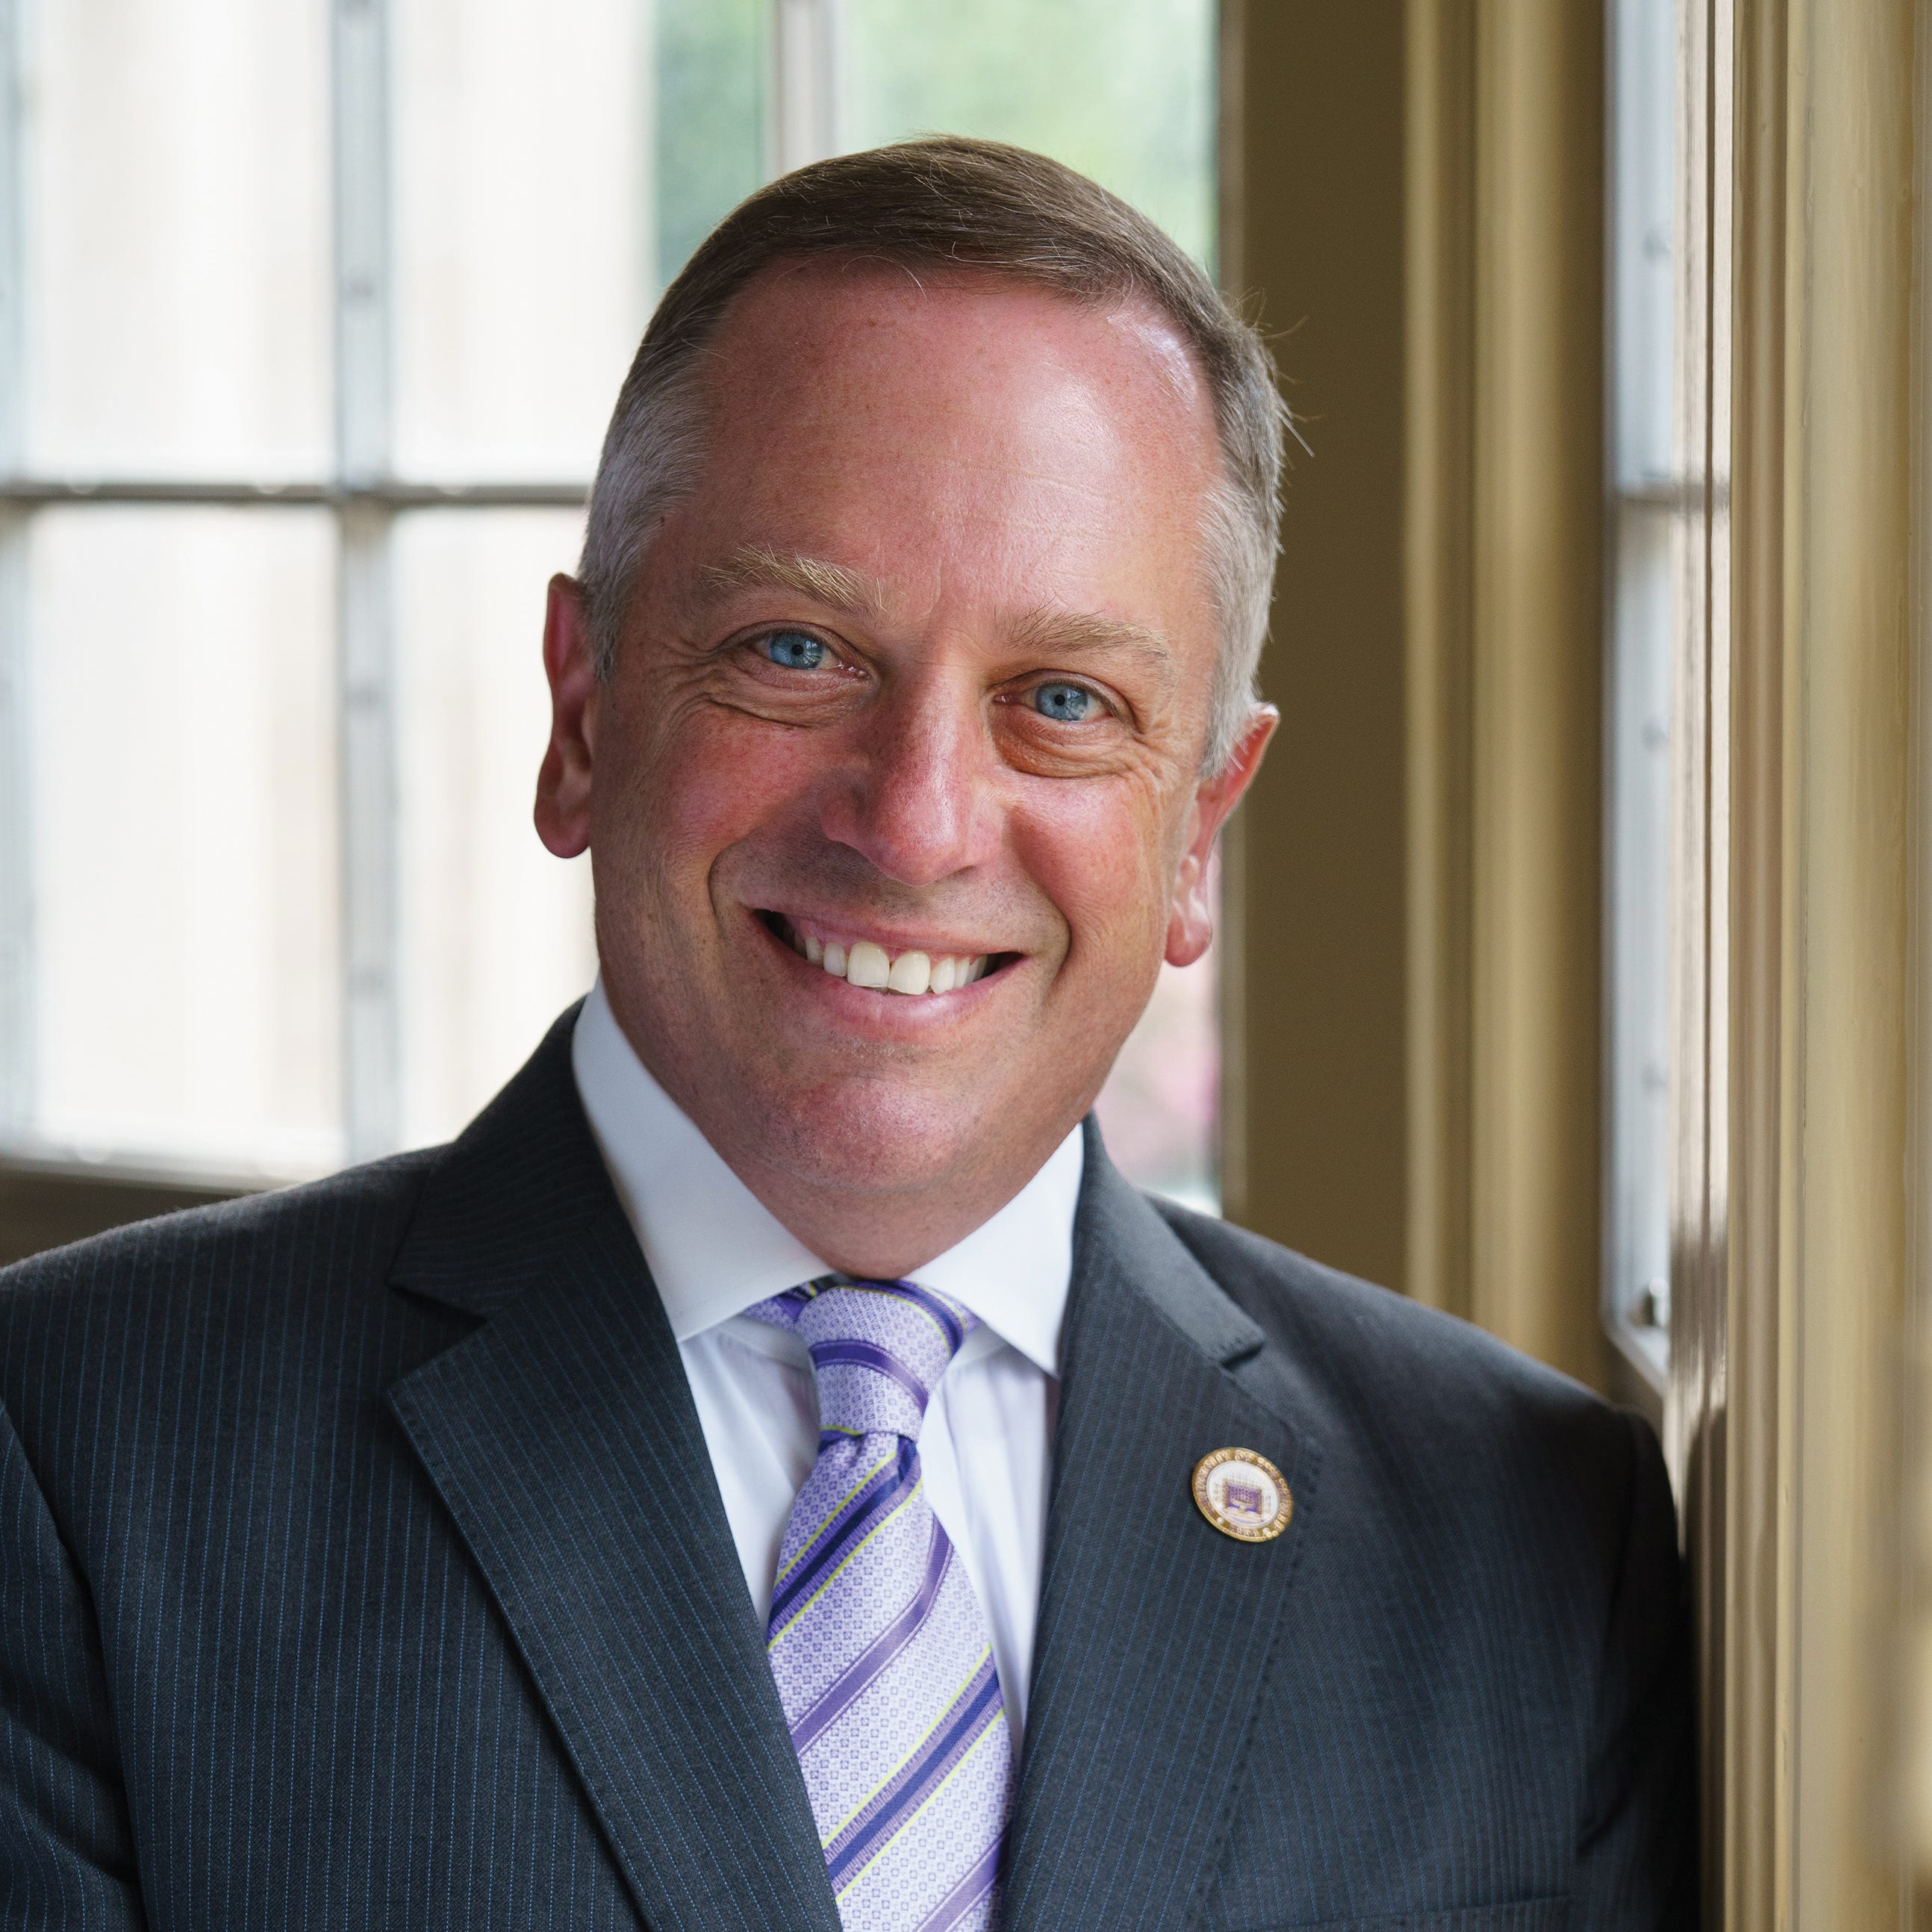 University of Evansville's 24th President, Christopher Pietruszkiewicz, sat down with the Courier & Press last week to talk his new role in leading the university.